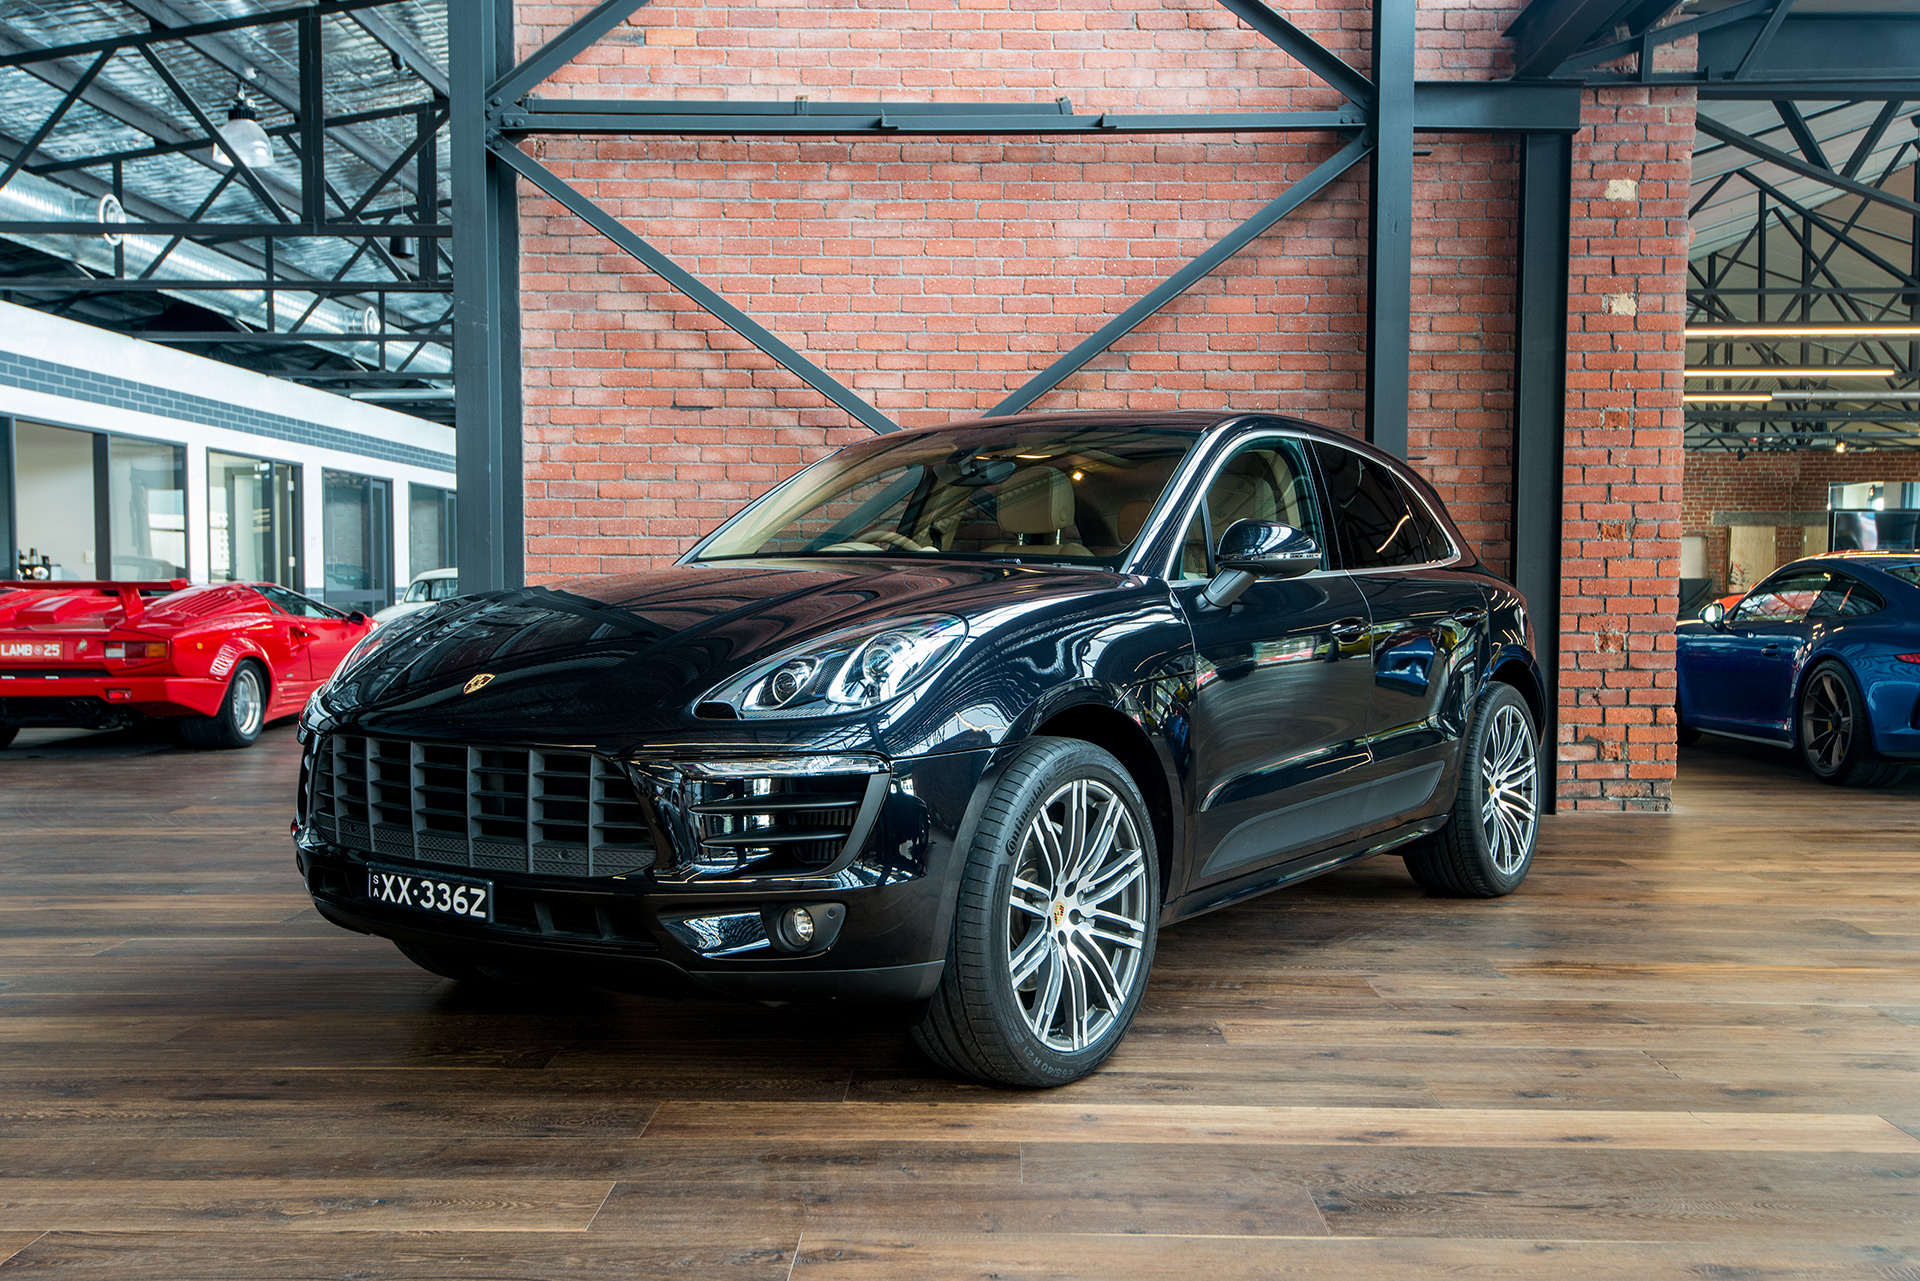 Sport Cars For Sale >> 2014 Porsche Macan S (MY15) - Richmonds - Classic and Prestige Cars - Storage and Sales ...